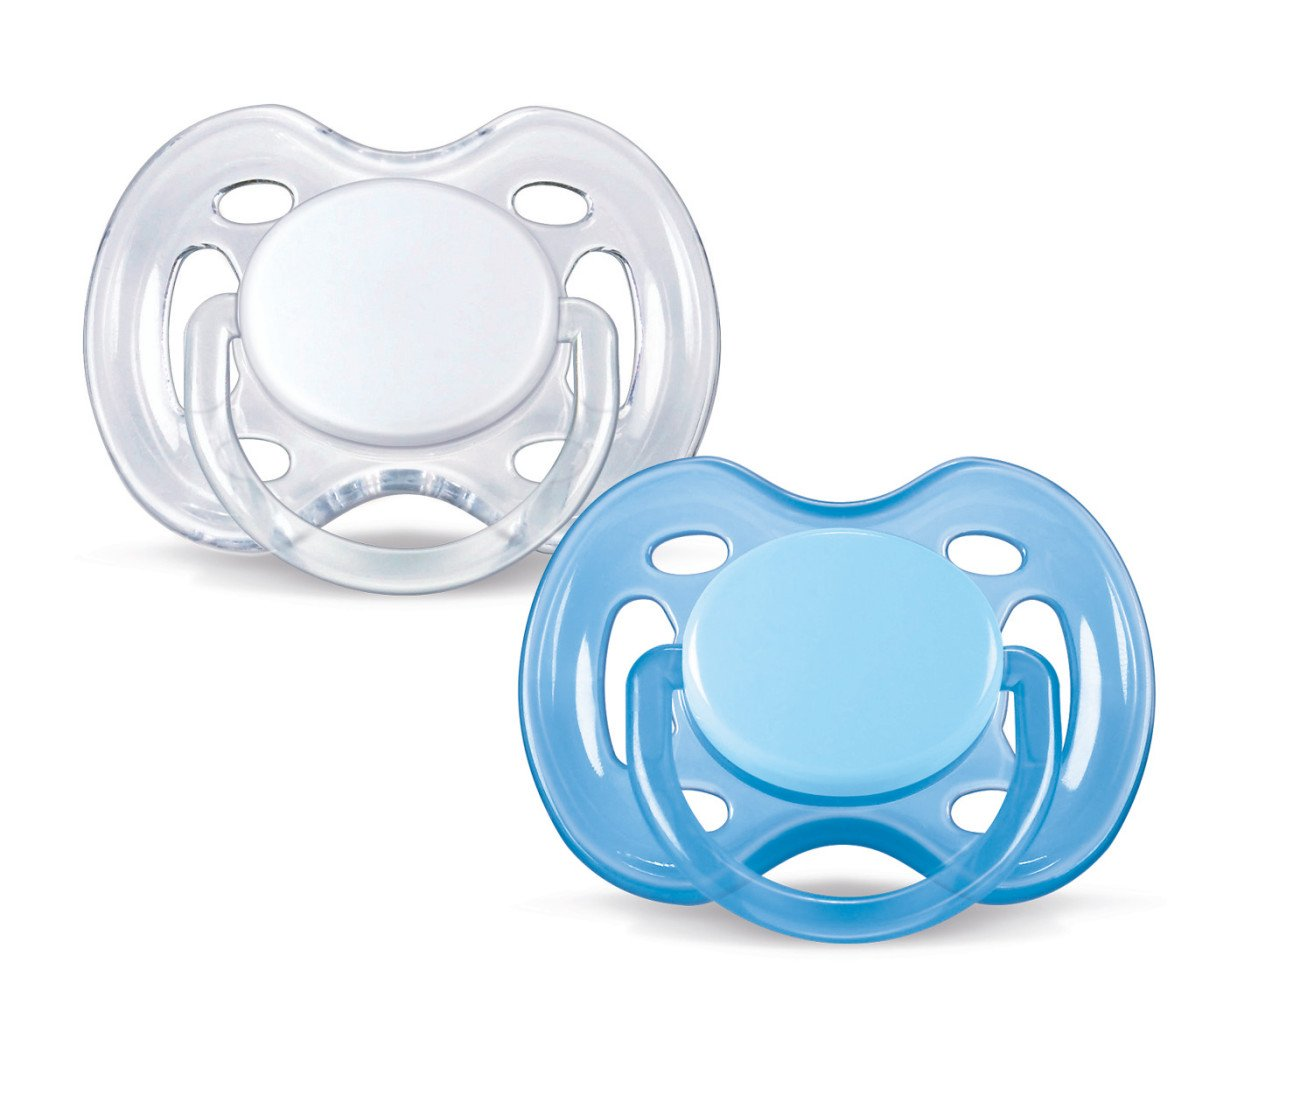 Philips Avent Orthodontic Pacifier, 0-6 Months, Free Flow, Blue/White, SCF178/25